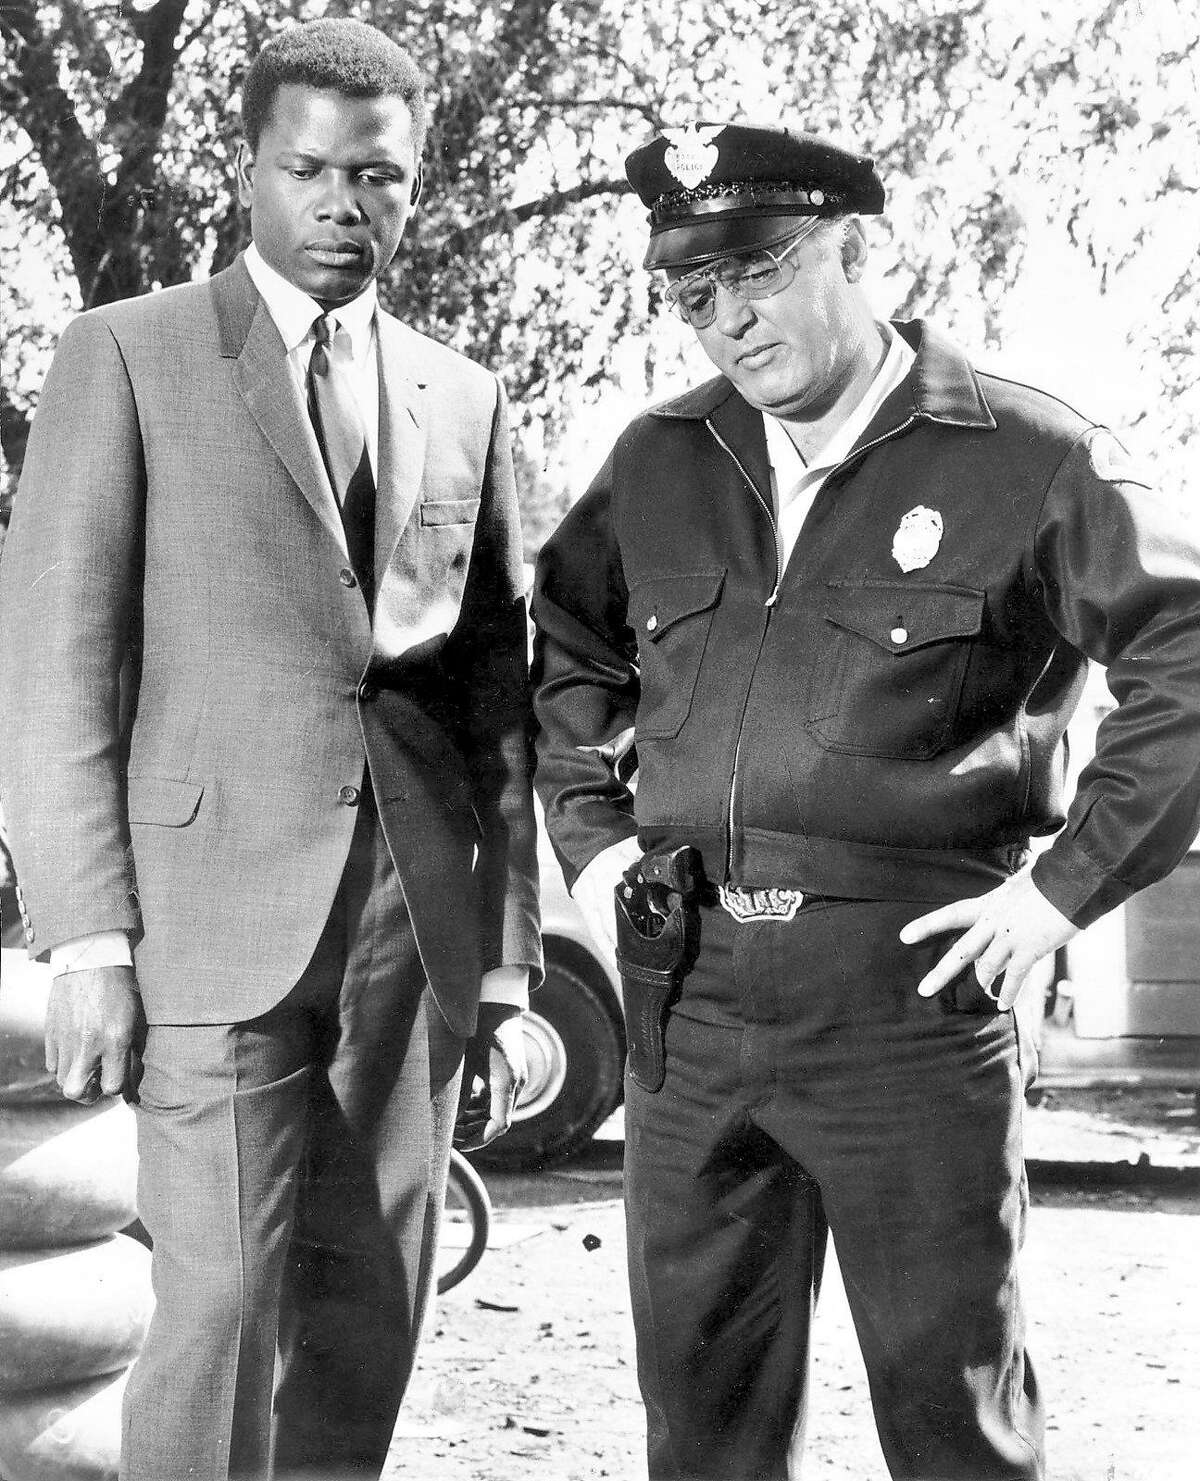 """(NYT3) UNDATED -- July 9, 2002 -- OBIT-STEIGER-B&W -- Rod Steiger, who won the 1967 Oscar for best actor for his role as the redneck Southern police chief in """"In the Heat of the Night,"""" died Tuesday. He was 77. Steiger, right, with Sidney Poitier in the film. (United Artists/The New York Times) *LITE ALSO Ran on: 01-27-2008"""